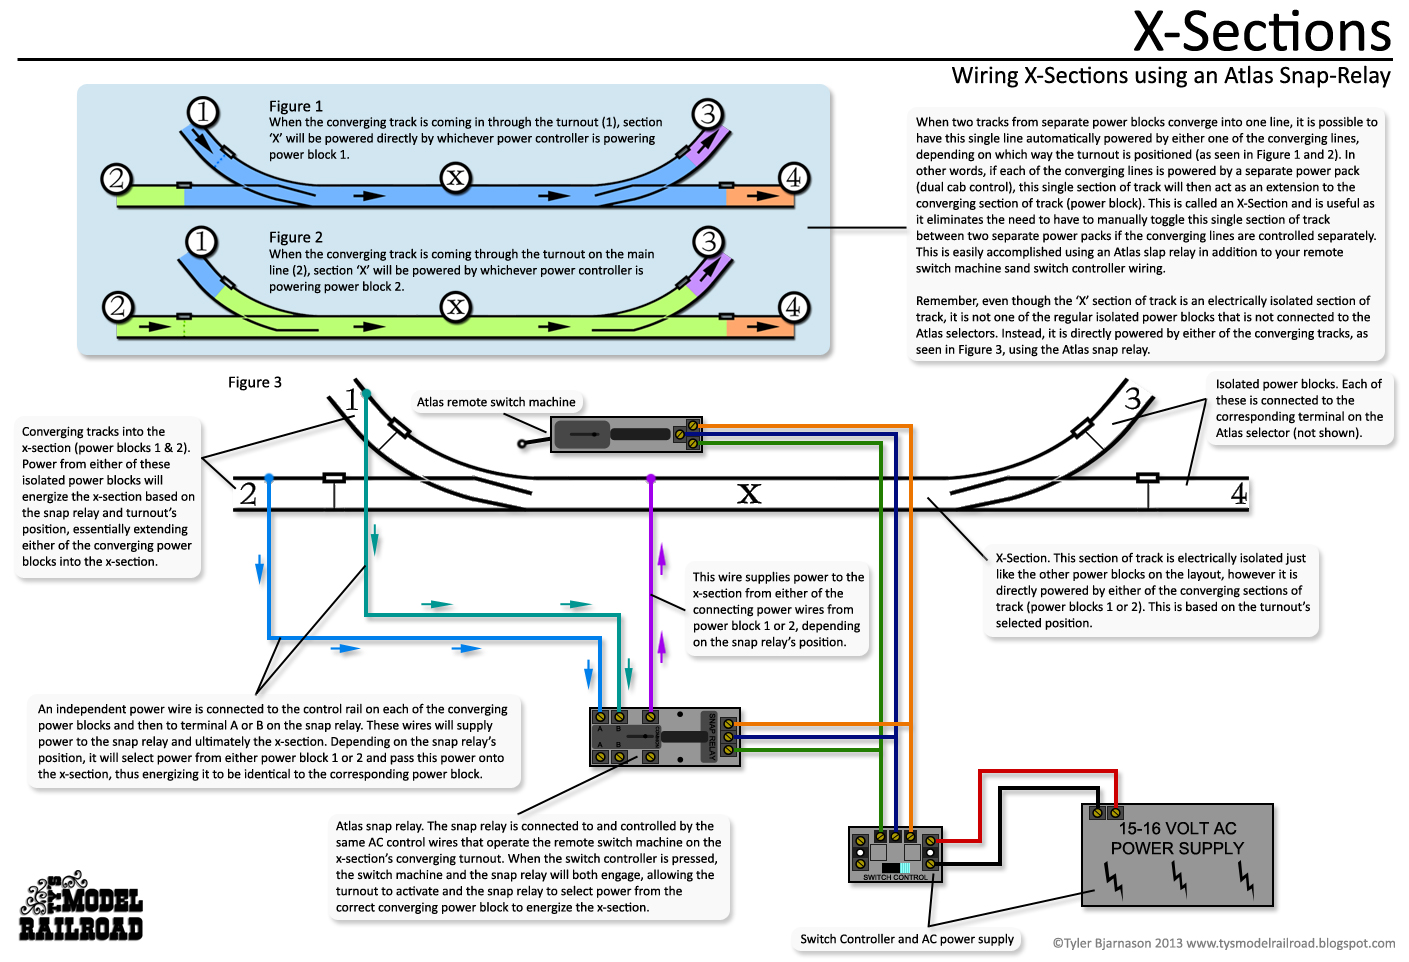 Tys Model Railroad Wiring Diagrams Diagram Figure How To Wire An X Section Using Atlas Snap Relay And Existing Remote Switch